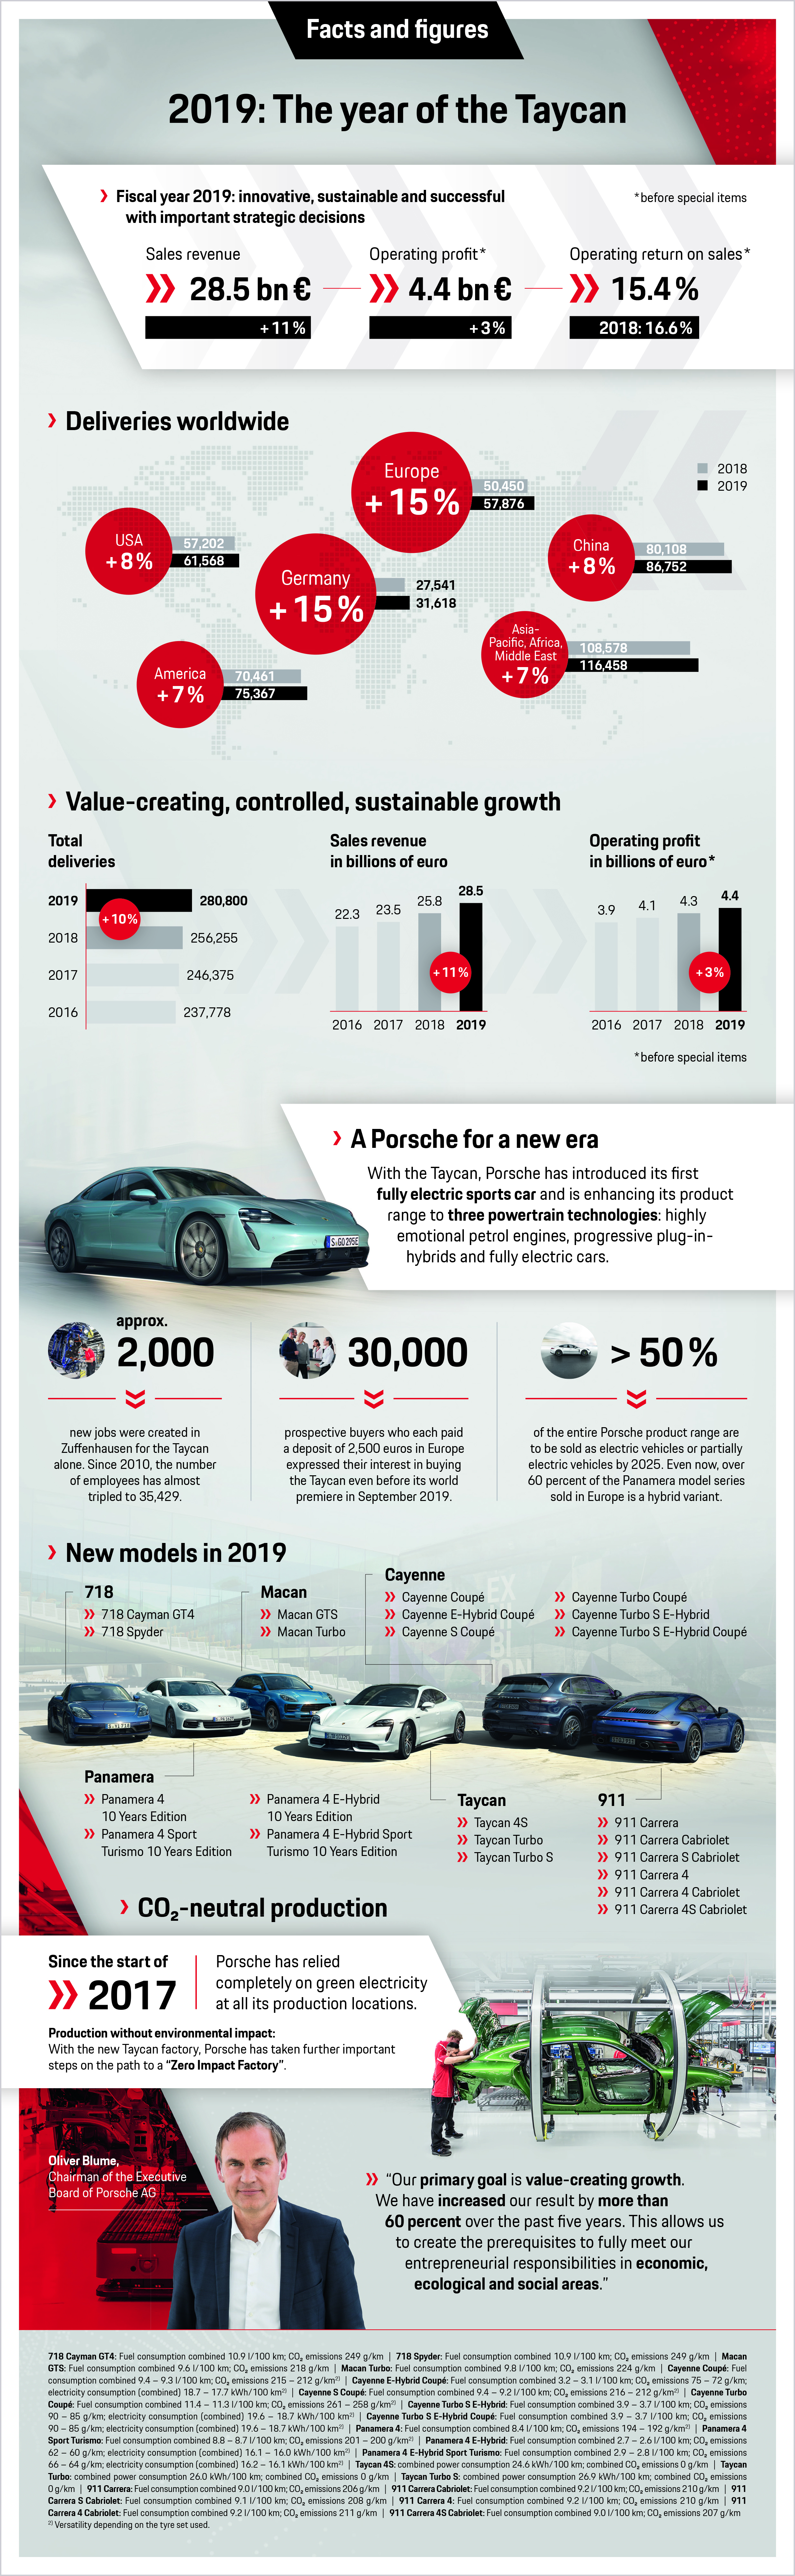 2019: The year of the Taycan, infographic, 2020, Porsche AG